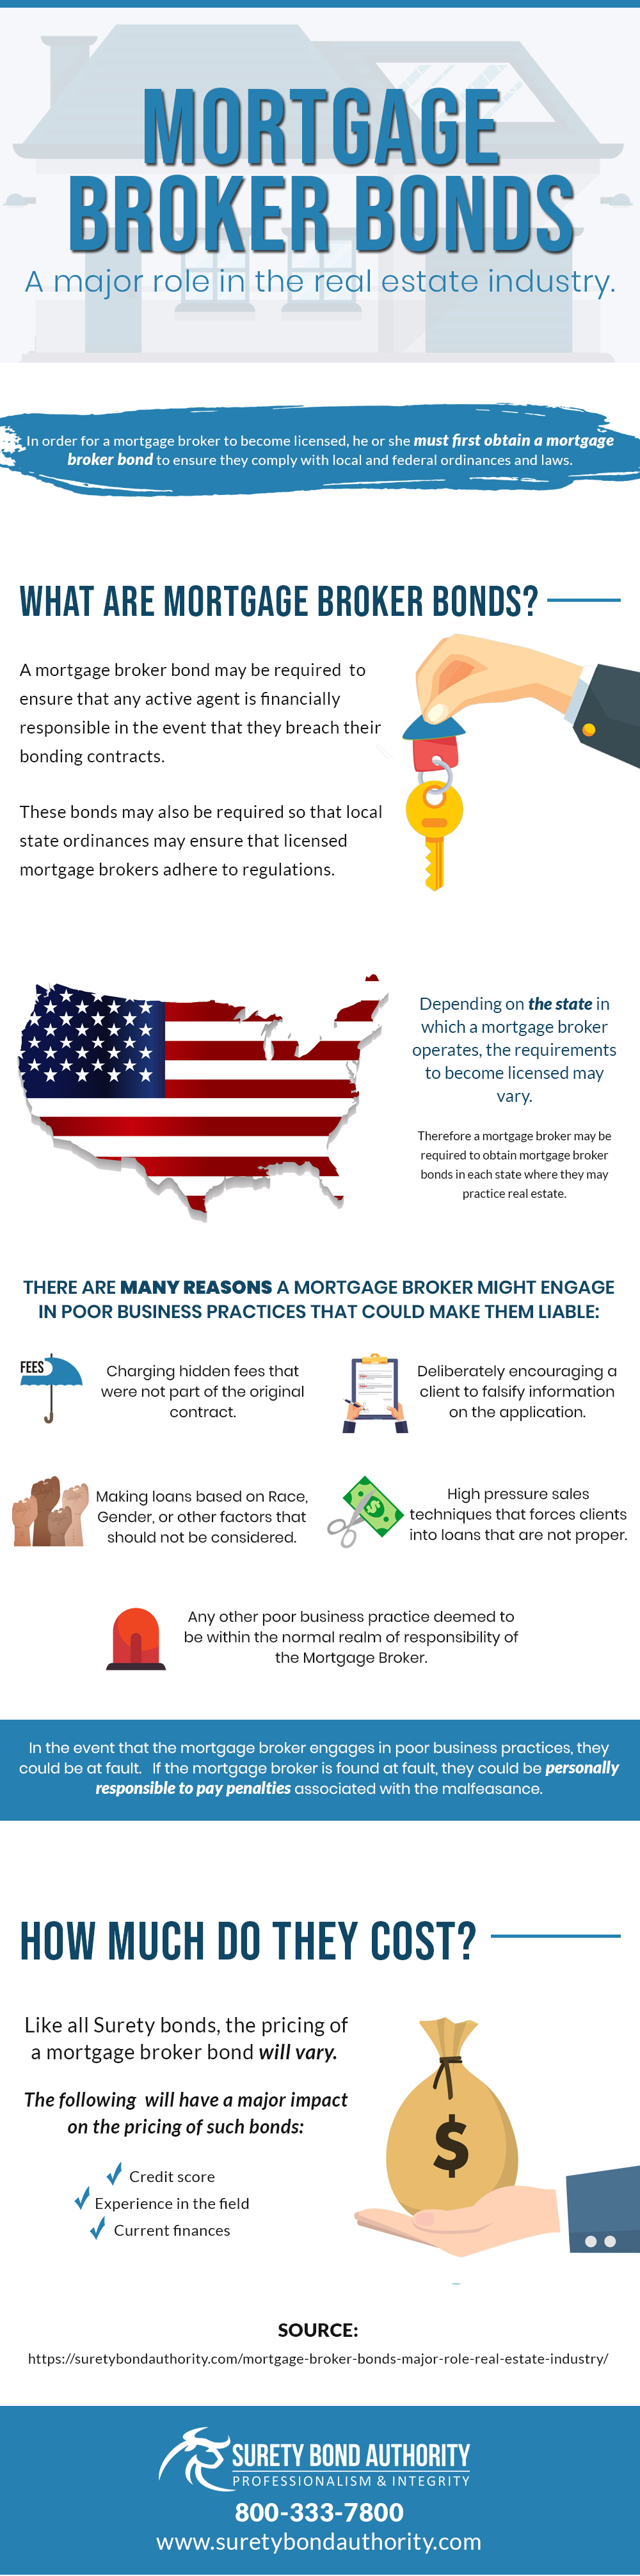 Mortgage Broker Bonds Infographic